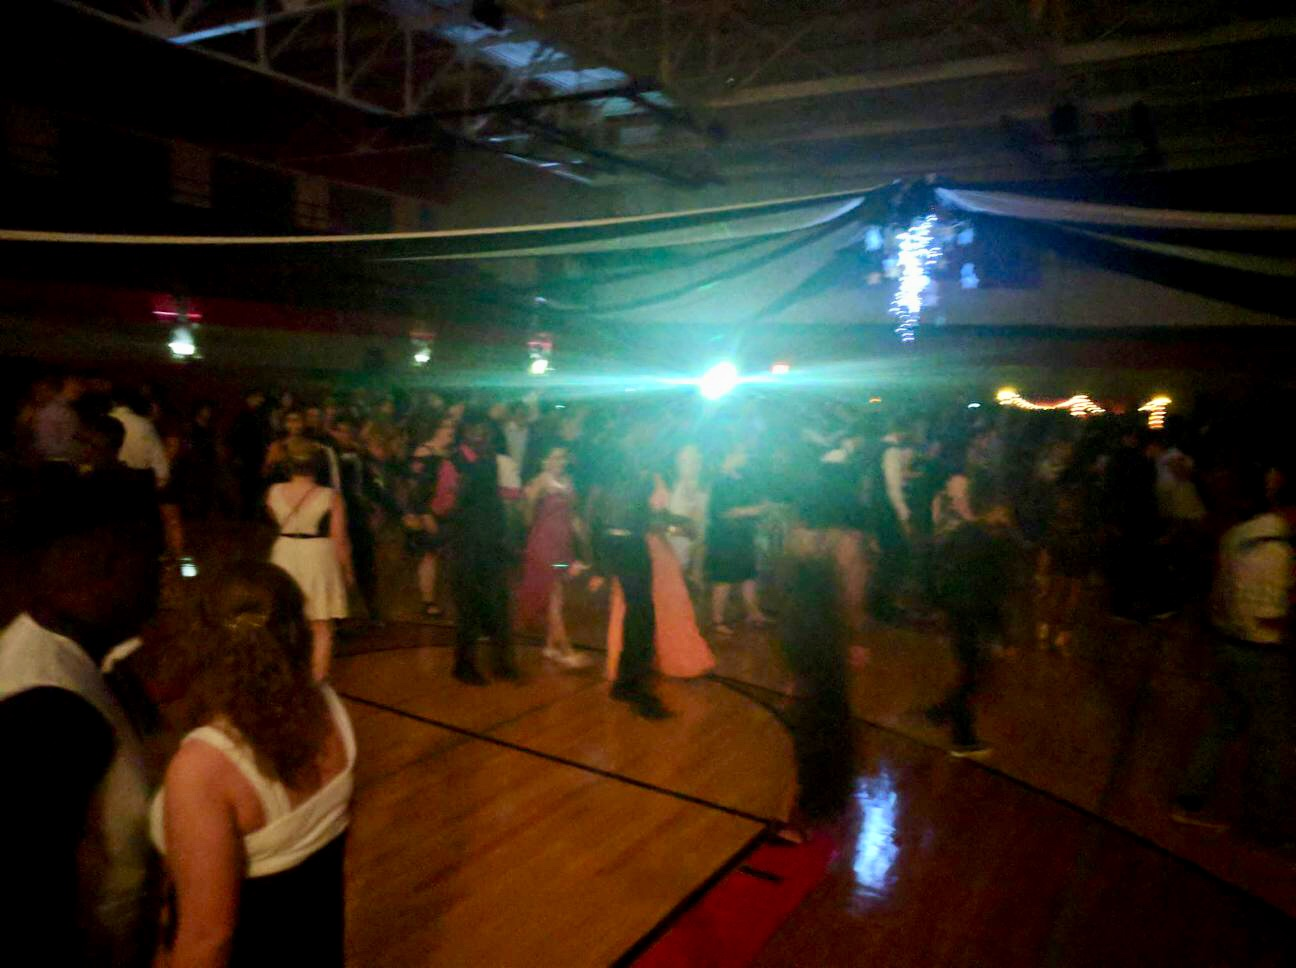 The dance began at 8pm and the doors opened to students to begin a night full of fun and dancing. East staff opened up a coat check to allow students to place their belongings into a safe place while they began a carefree night of partying.